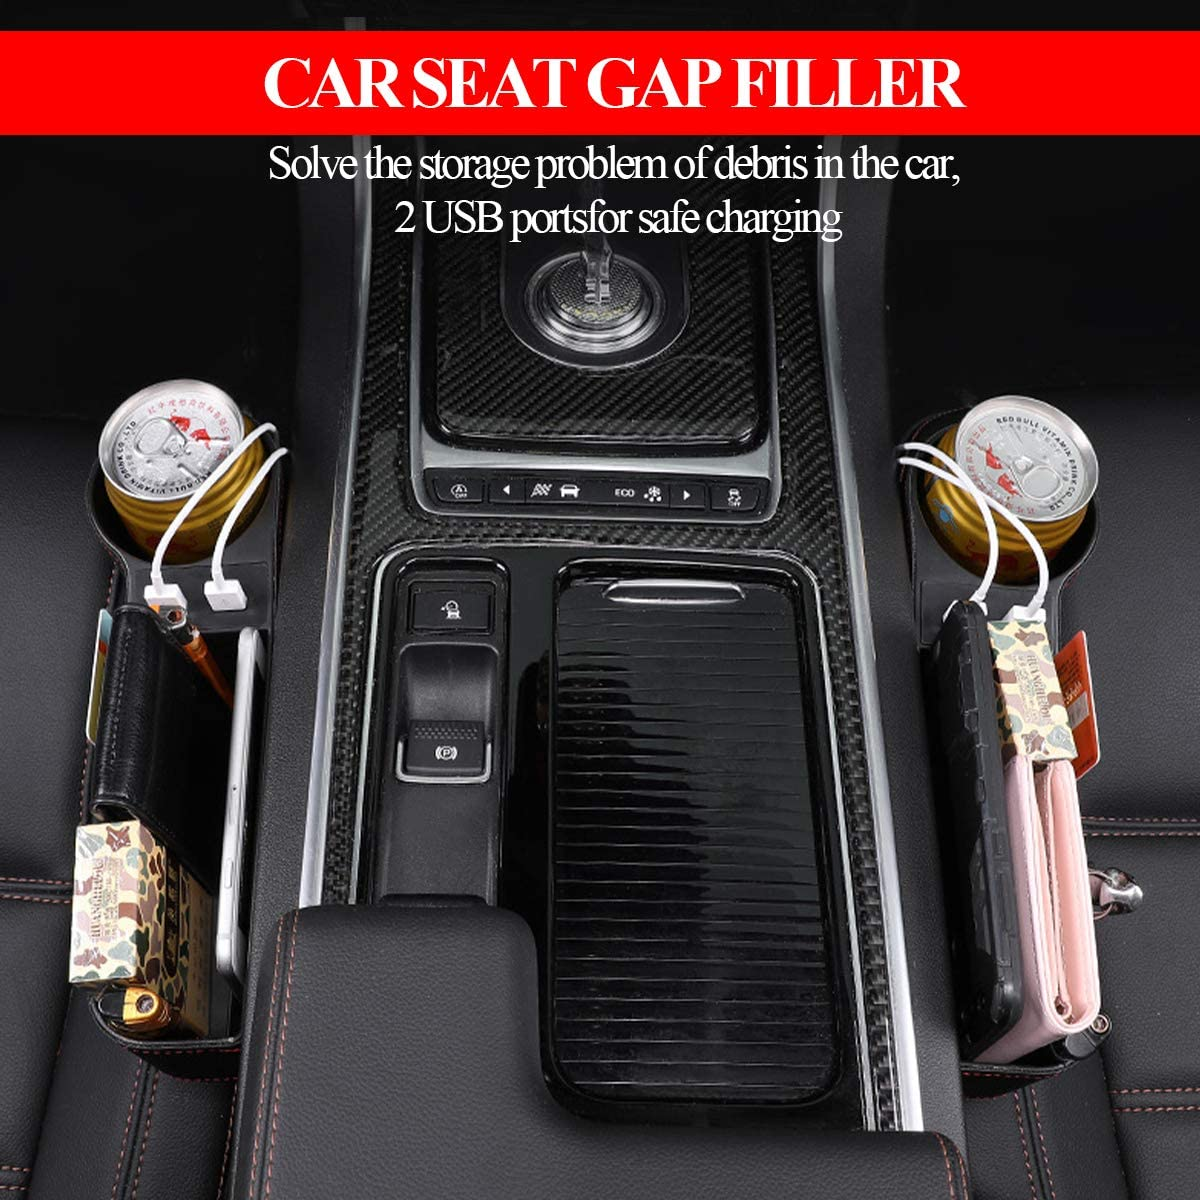 Car Seat Gap Organizer Multifunctional Car Seat Filler Leather Storage Box with Cup Holder Dual USB Charging for Cellphones,Keys,Cards,Wallets